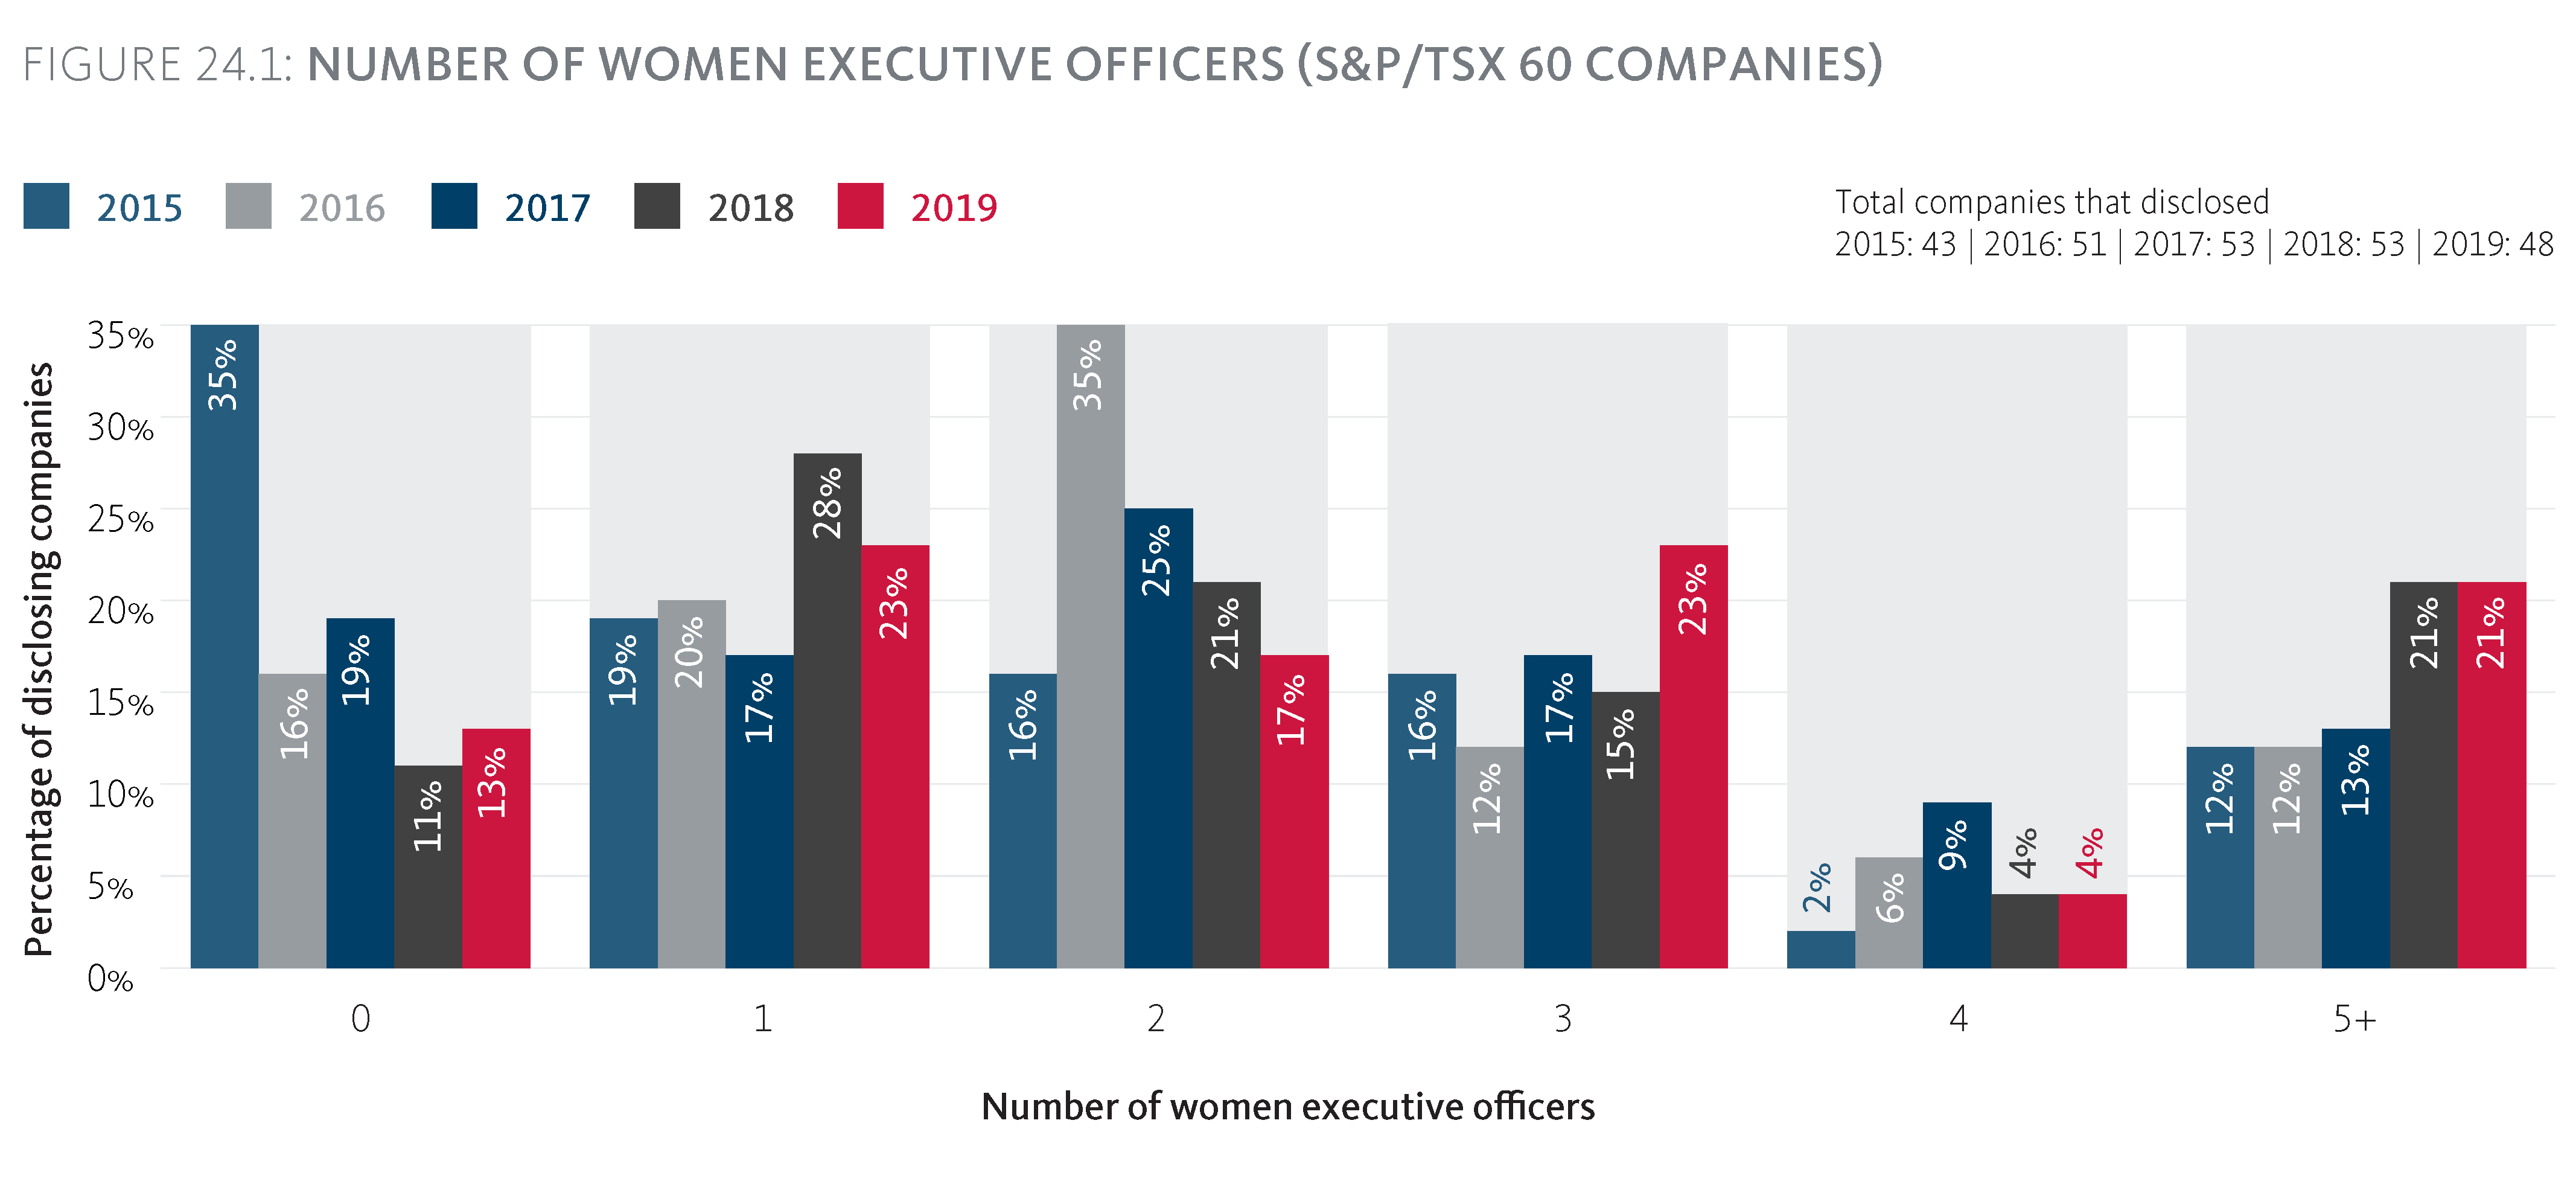 Number of women Executive Officers (S&P/TSX 60 companies)